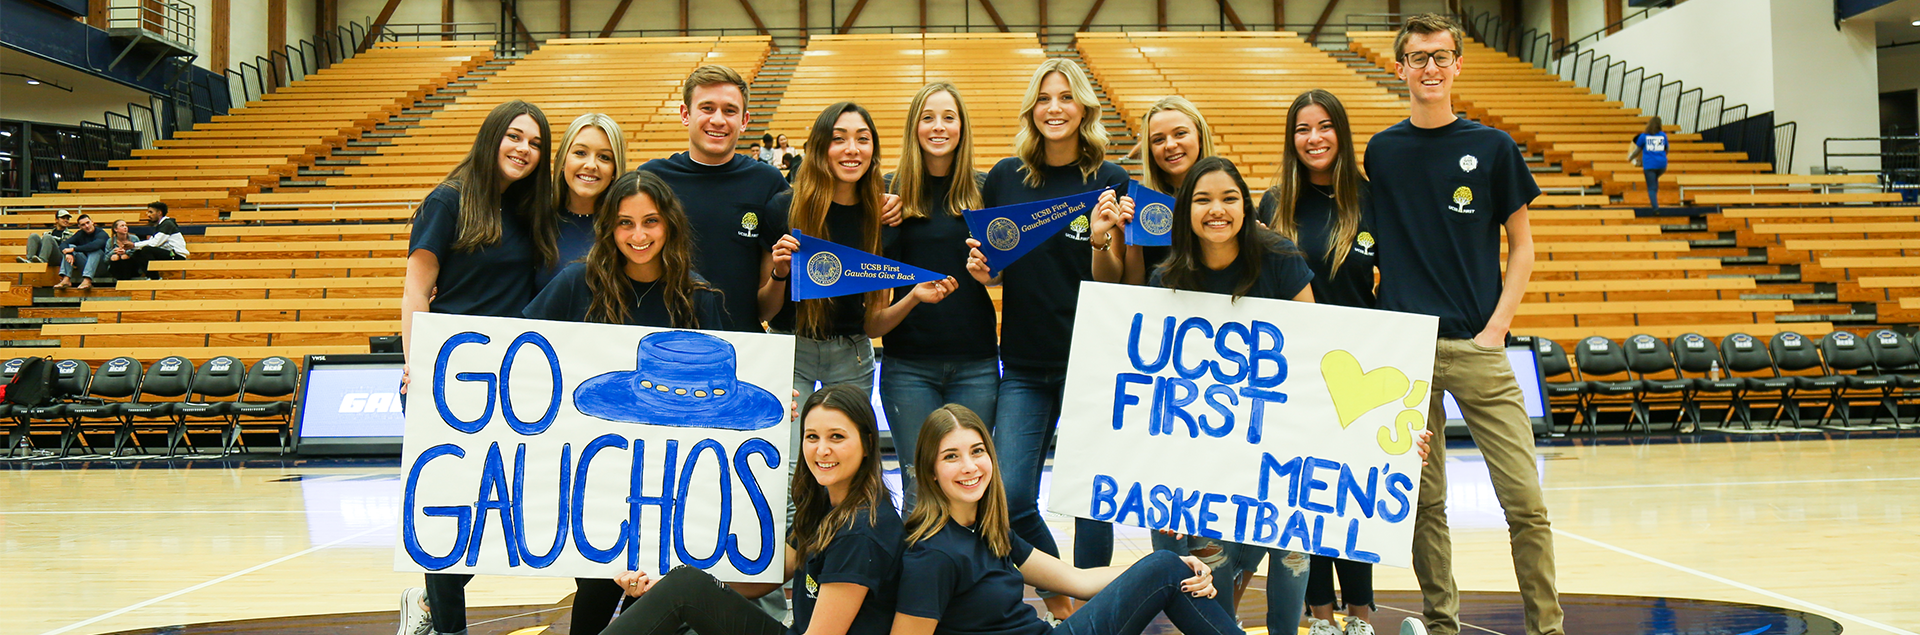 UCSB First Team